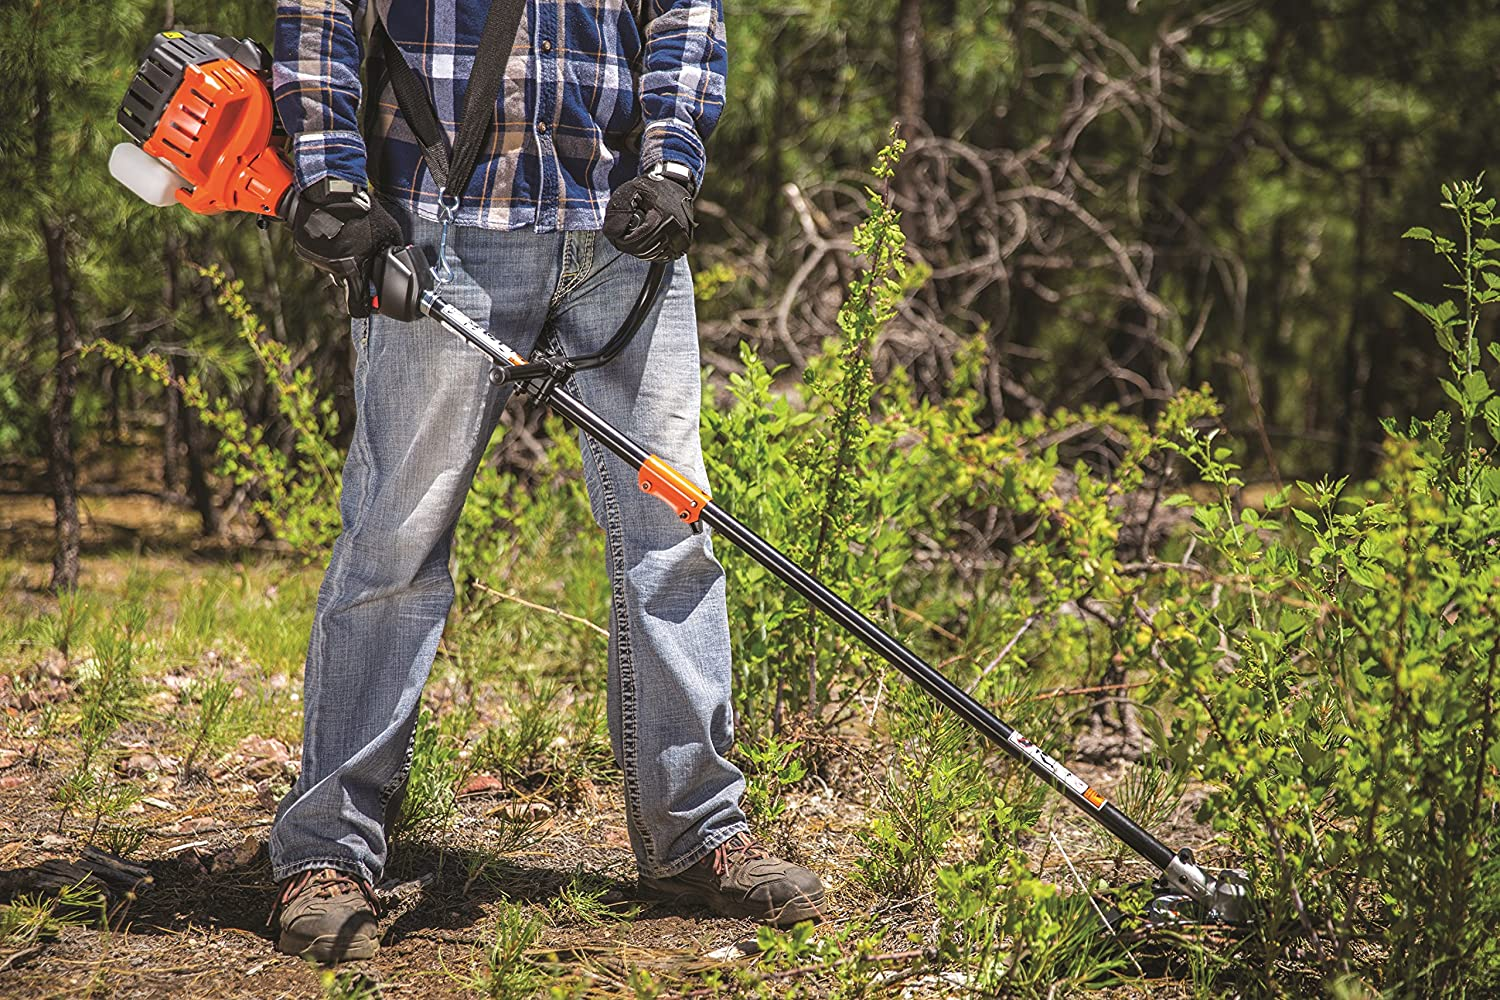 The Best Gas Hedge Trimmer